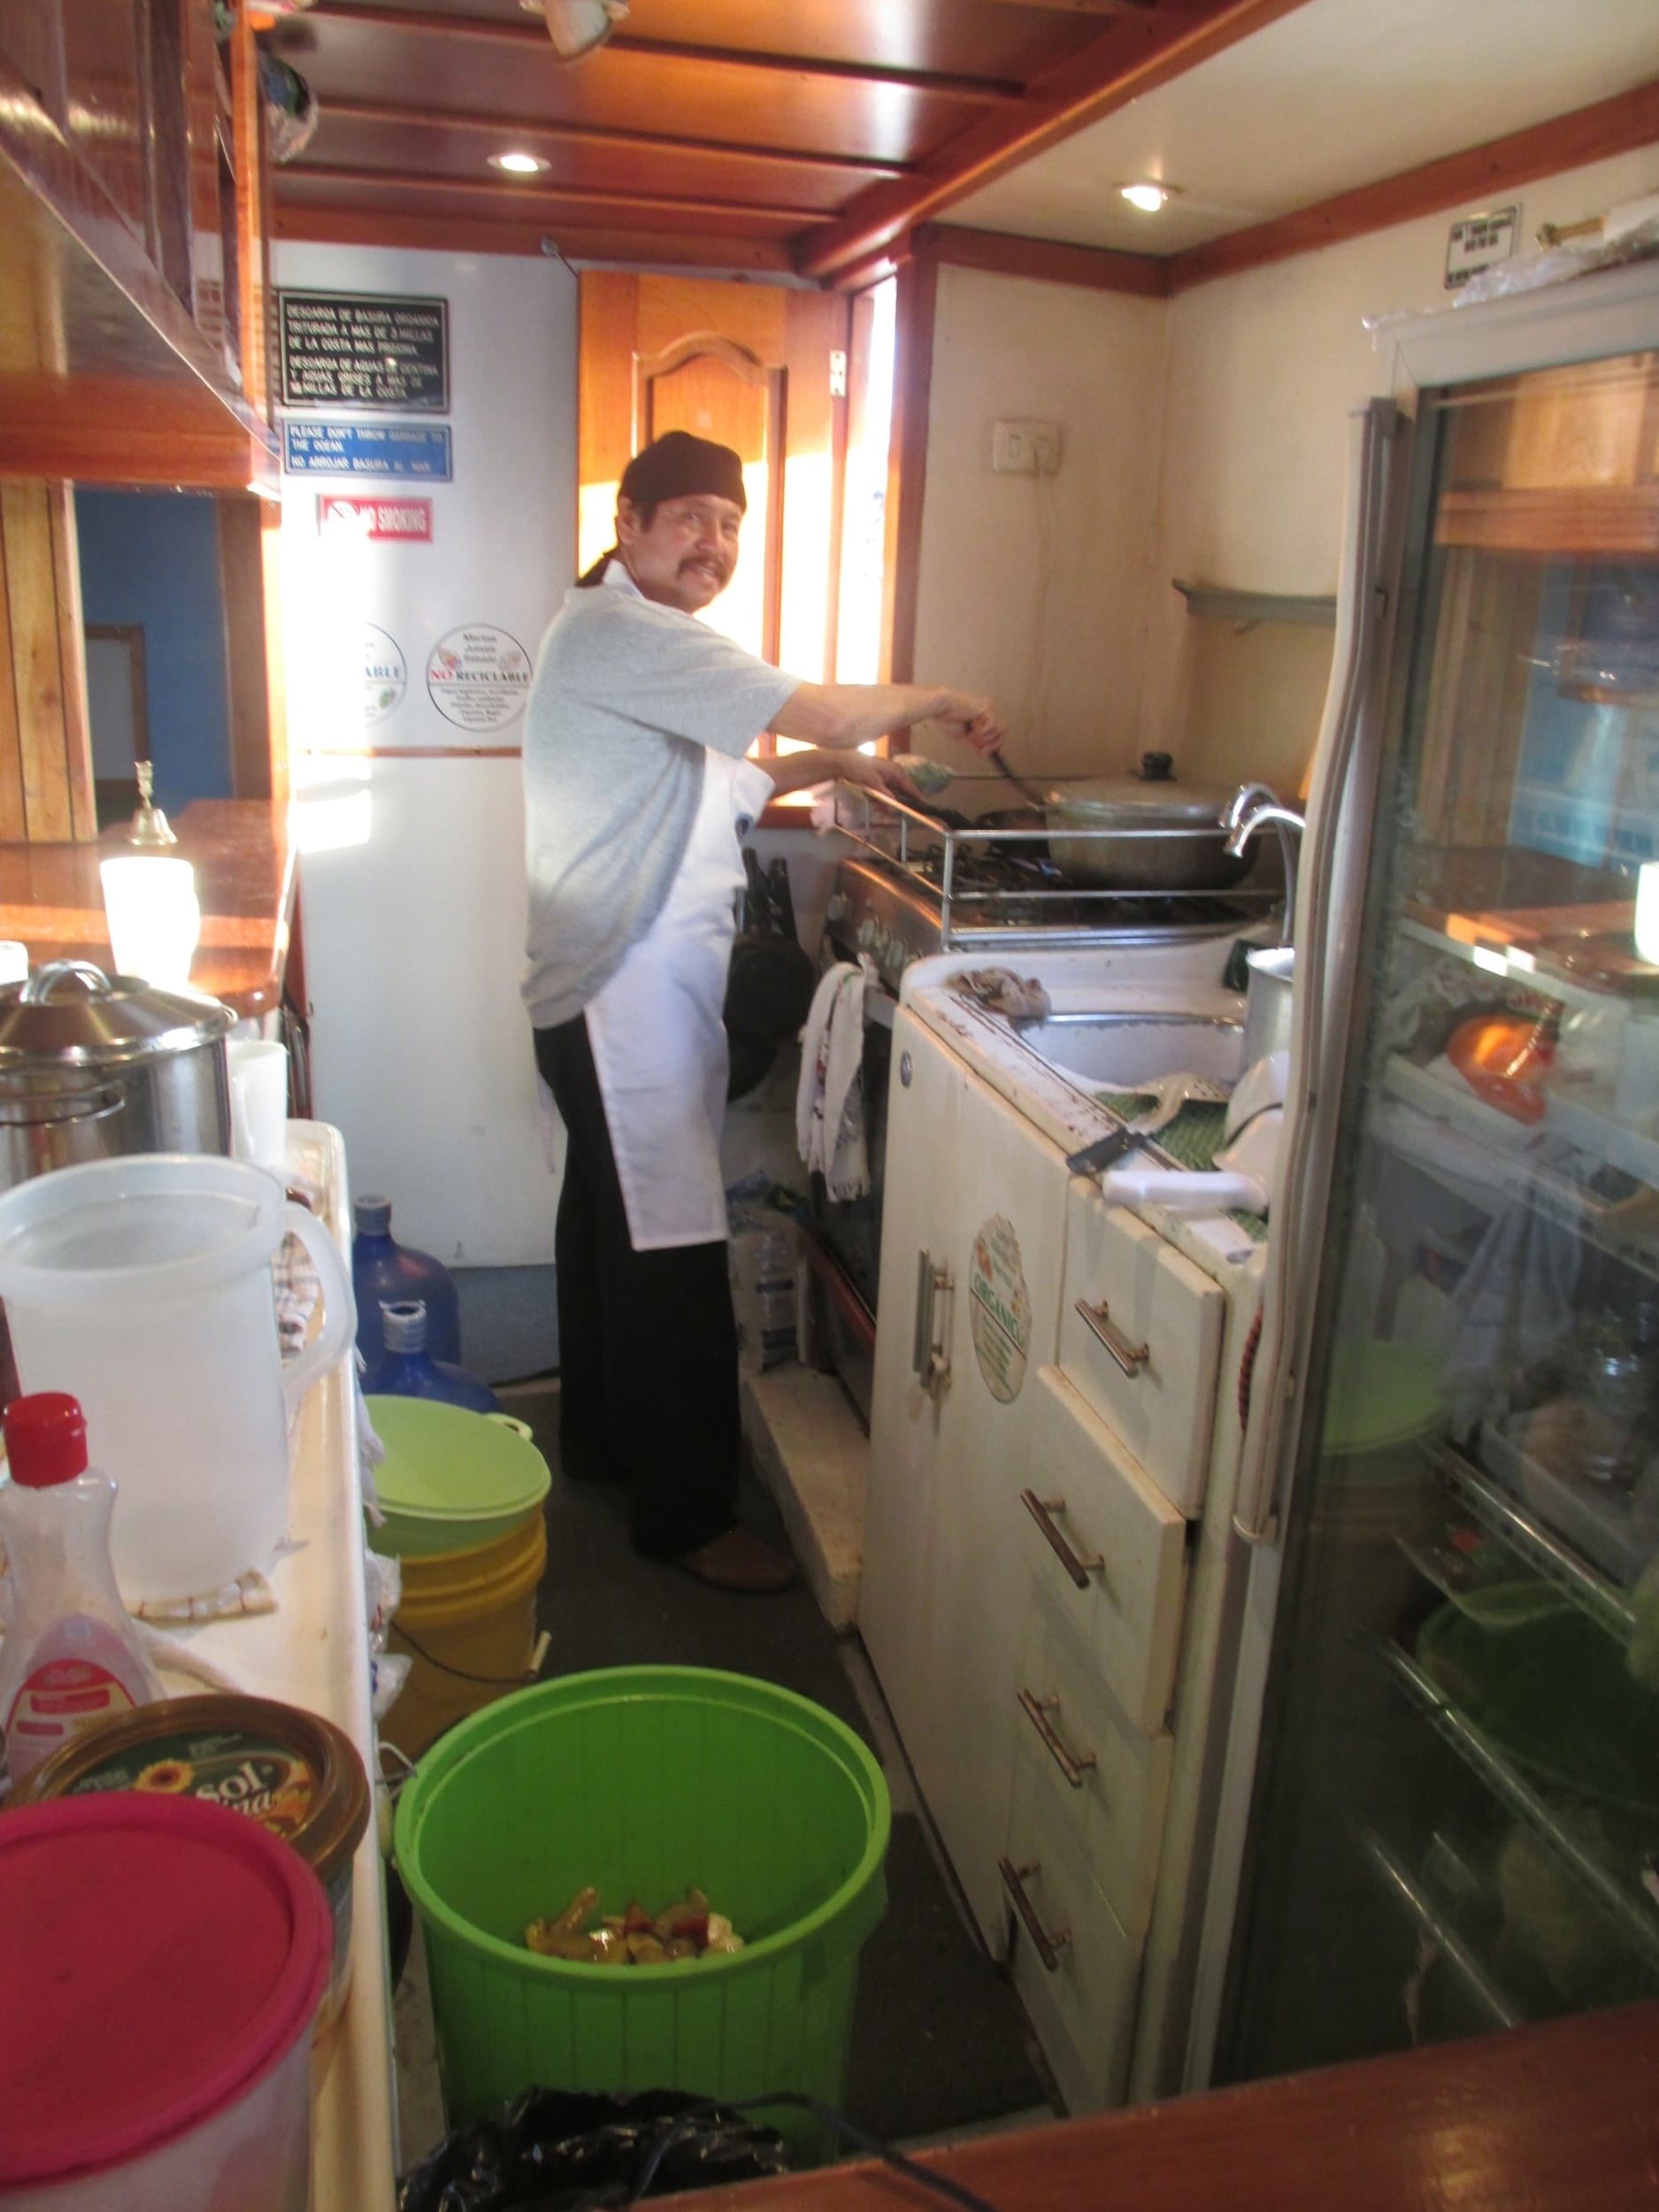 Victor, our trusty cheif, was able to cook for 17 in a rather small kitchen.